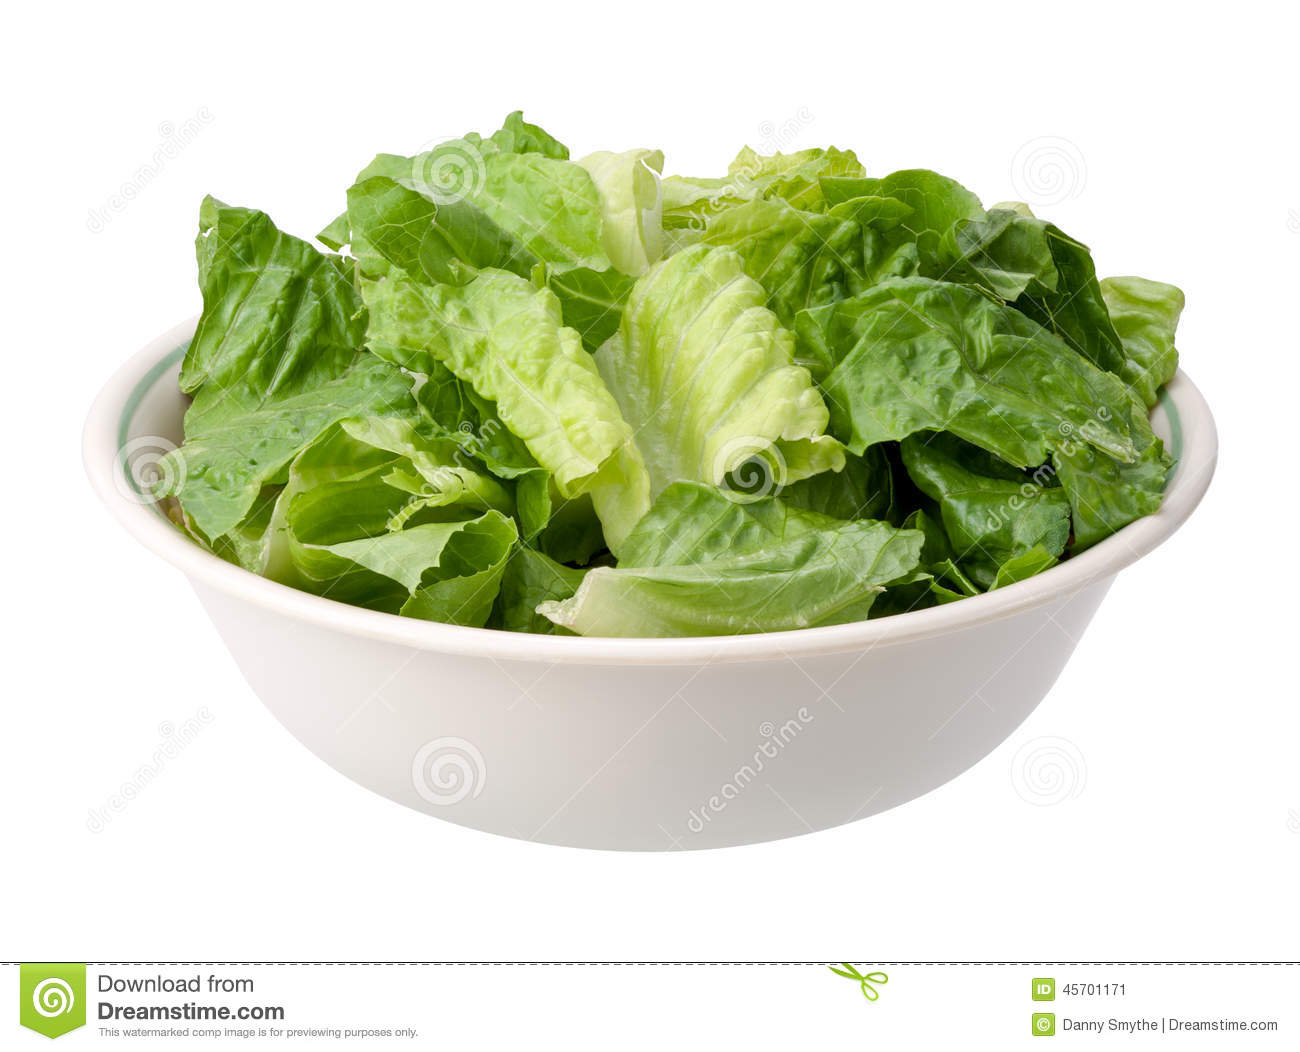 Salad Png Photos Free Royalty Free Stock Photos From Dreamstime